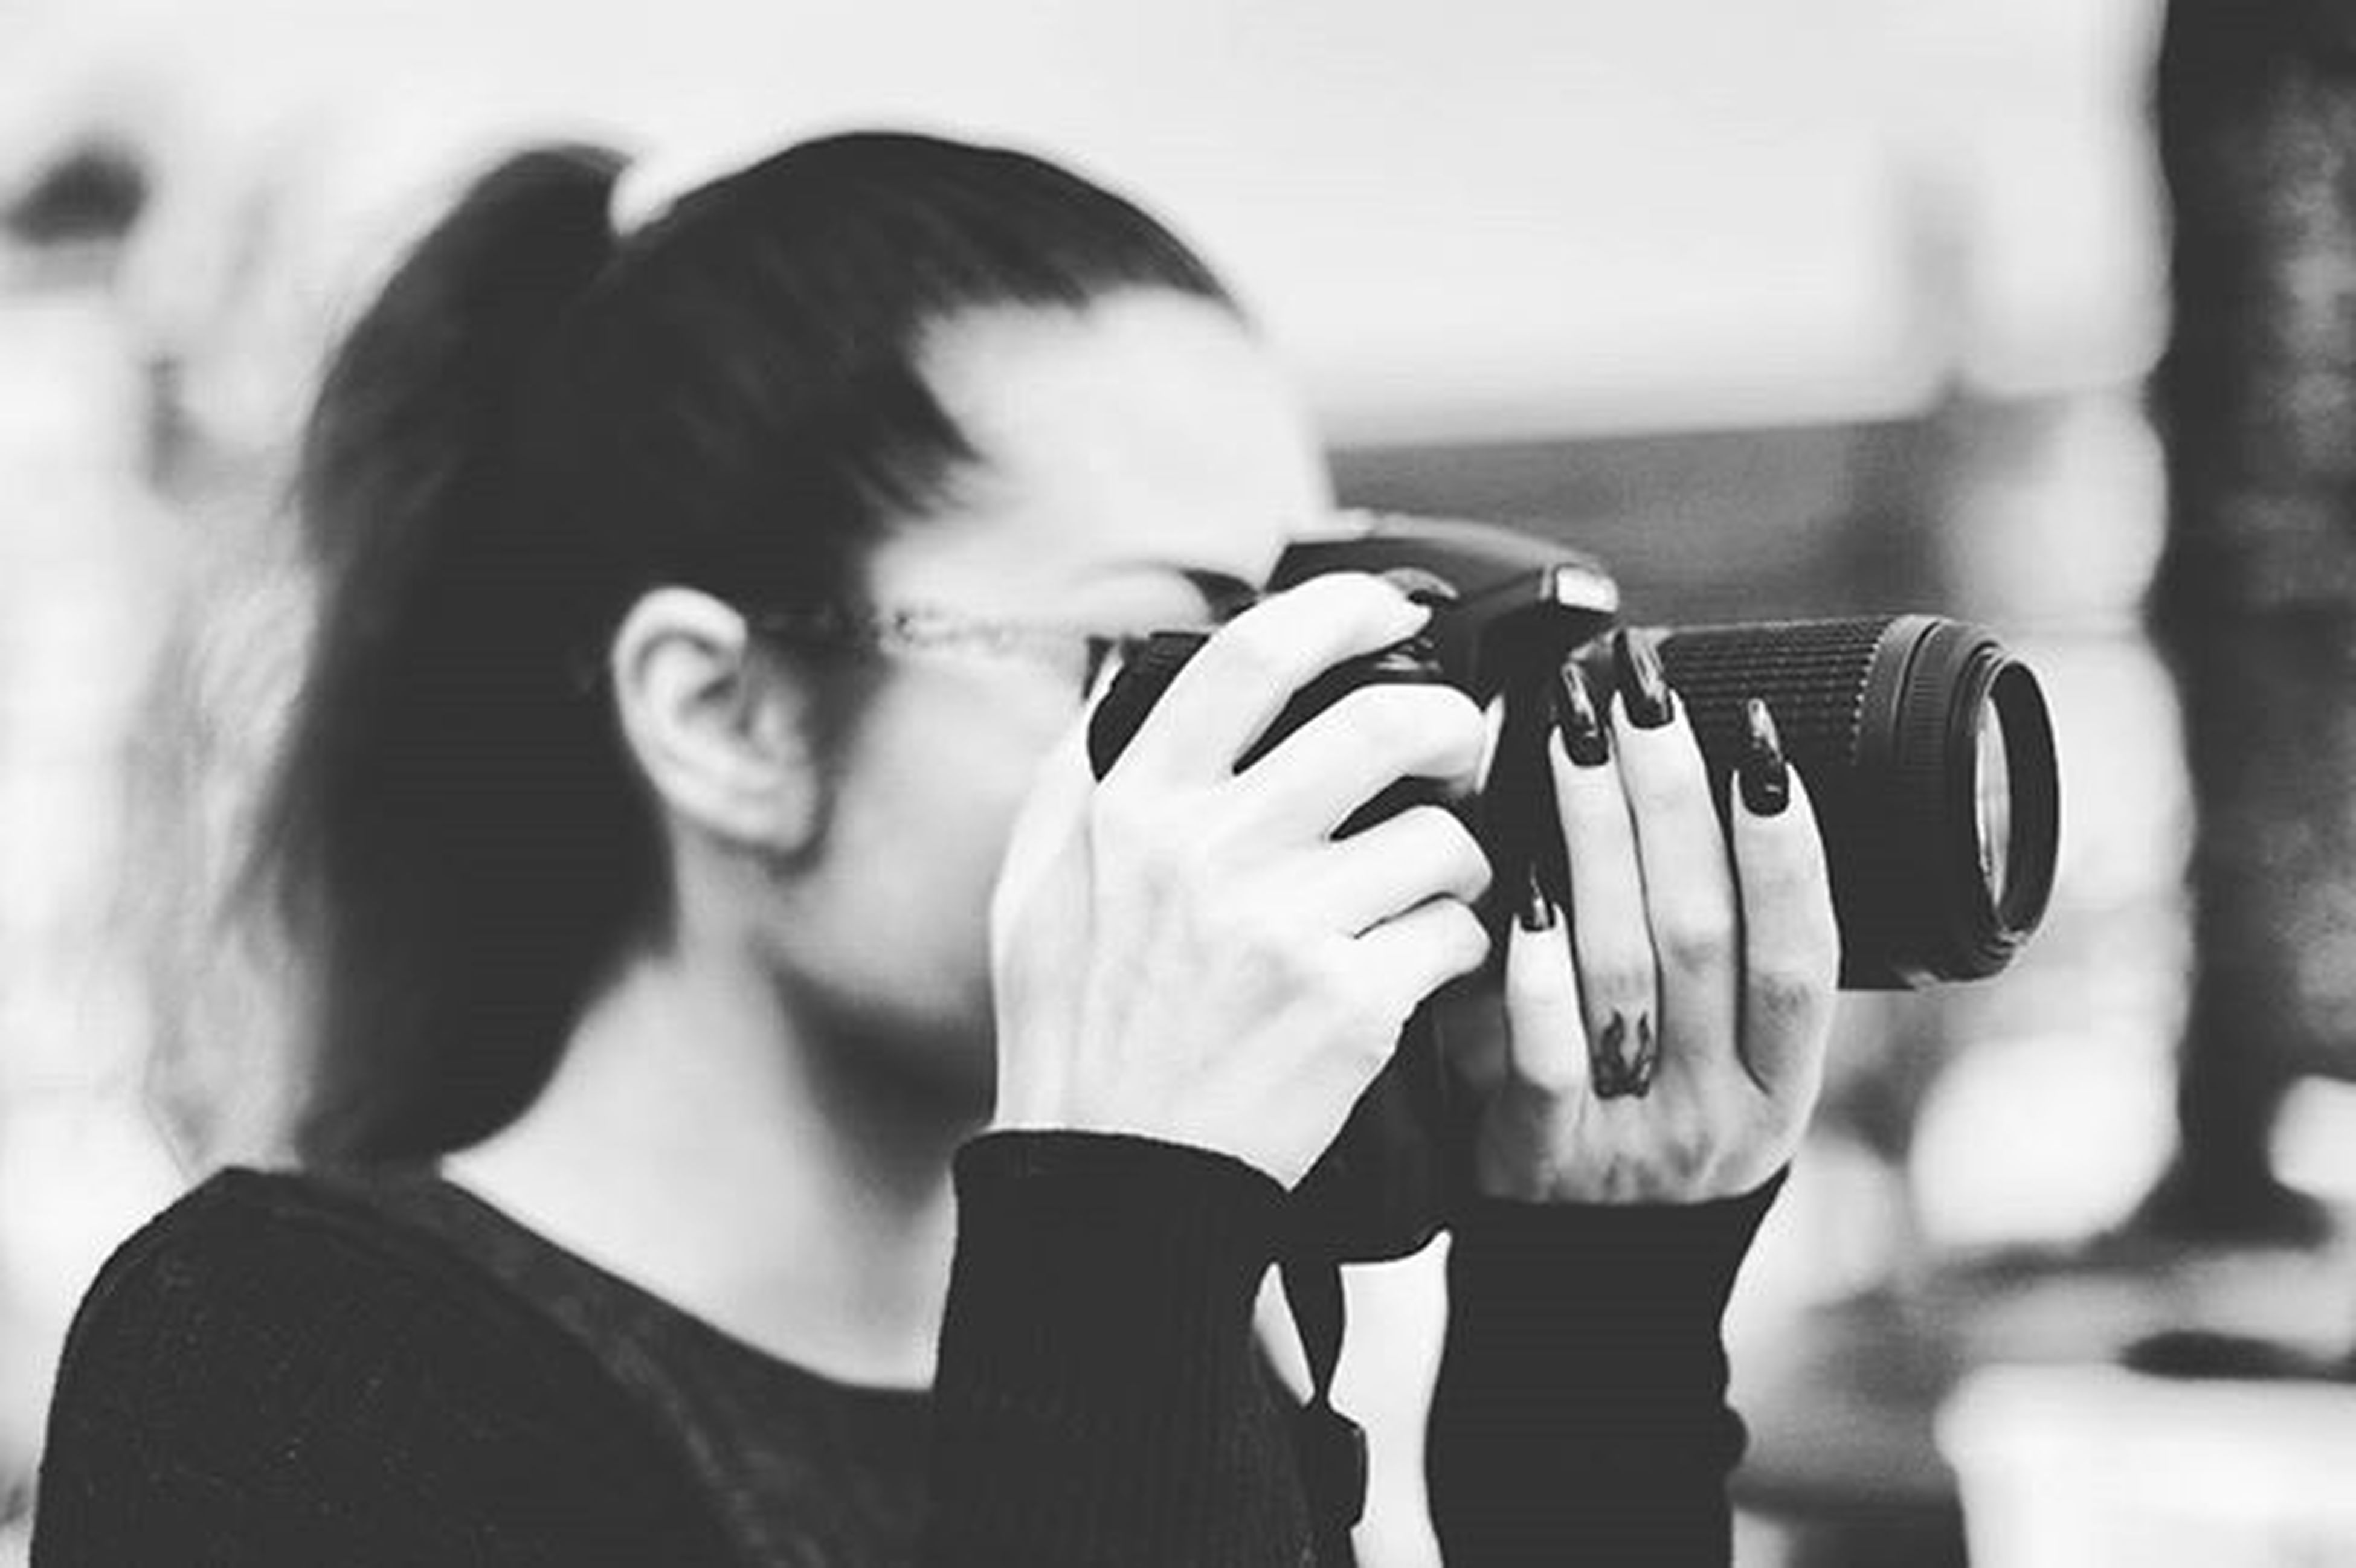 lifestyles, leisure activity, focus on foreground, standing, casual clothing, communication, technology, photography themes, holding, waist up, three quarter length, person, photographing, indoors, wireless technology, smart phone, young adult, headshot